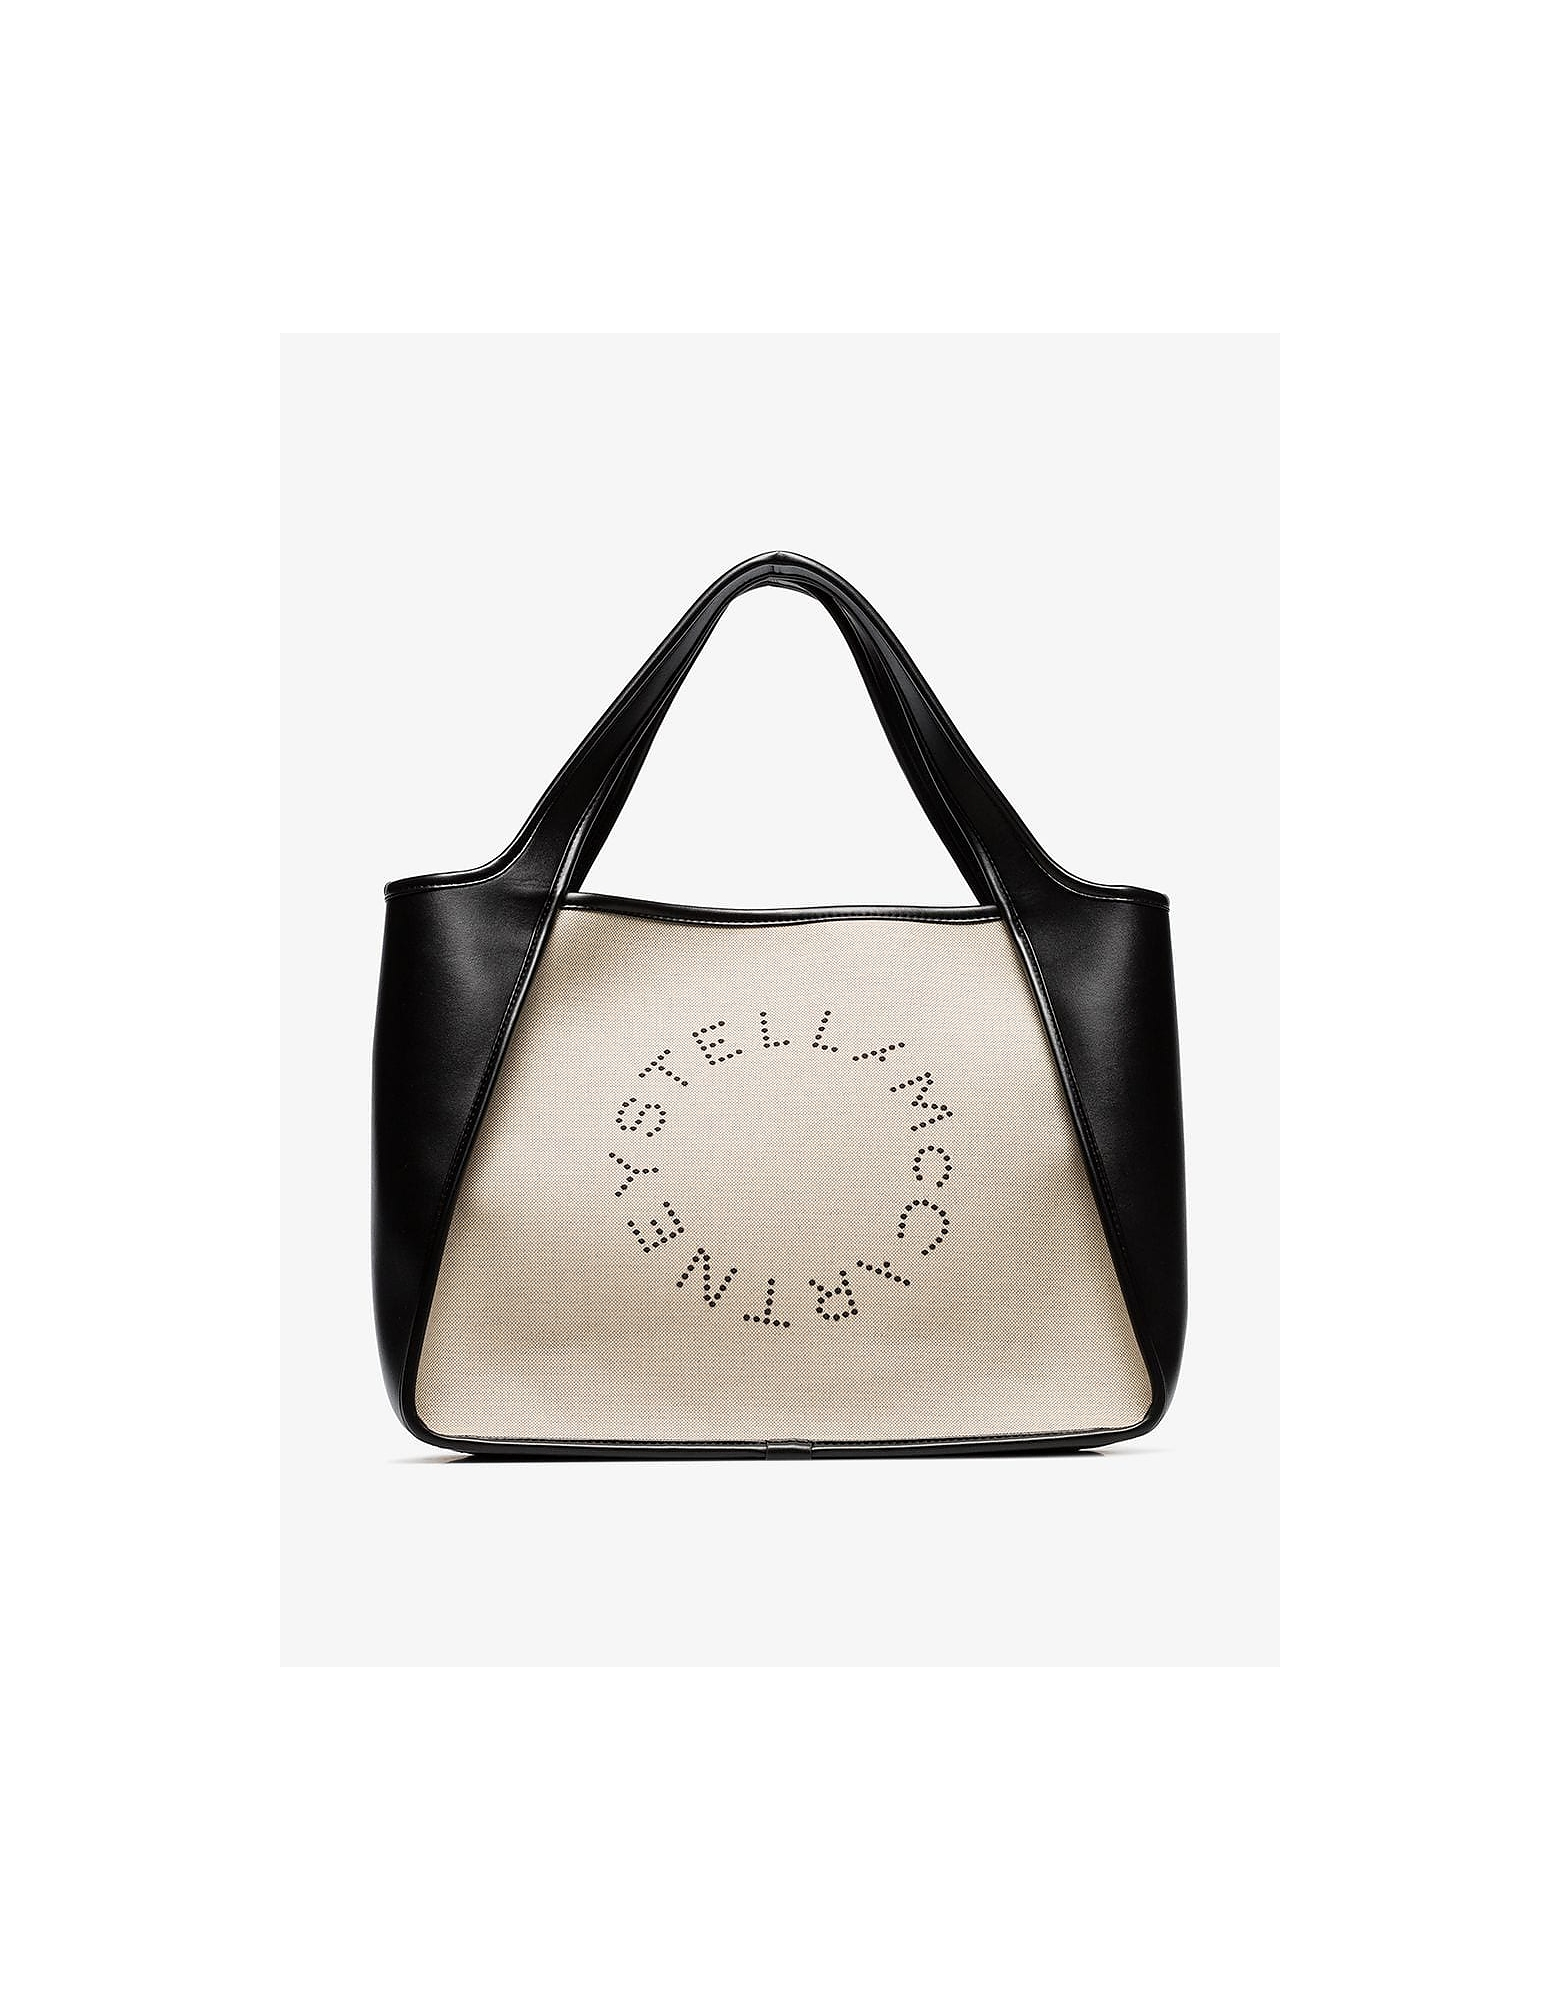 Stella Mccartney Totes STELLA LOGO CANVAS TOTE BAG